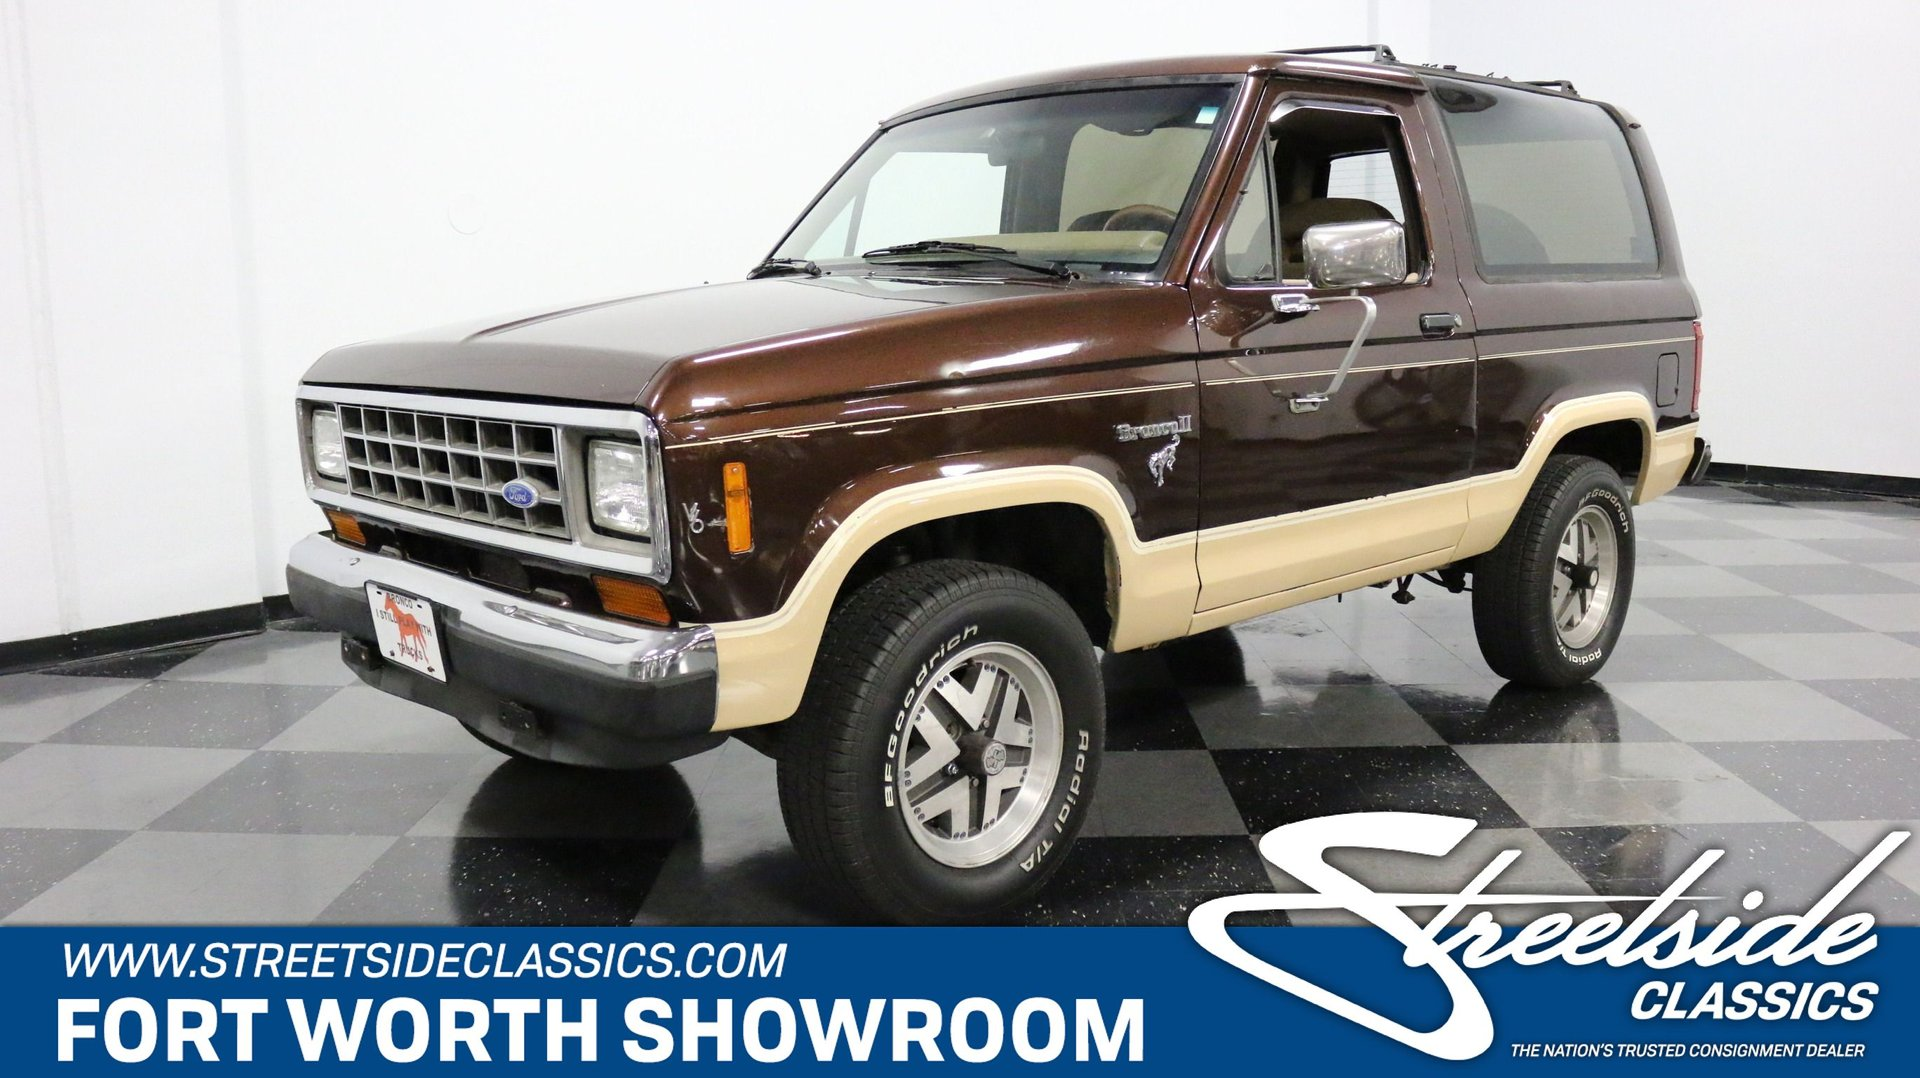 1986 Ford Bronco Ii Classic Cars For Sale Streetside Classics The Nation S 1 Consignment Dealer